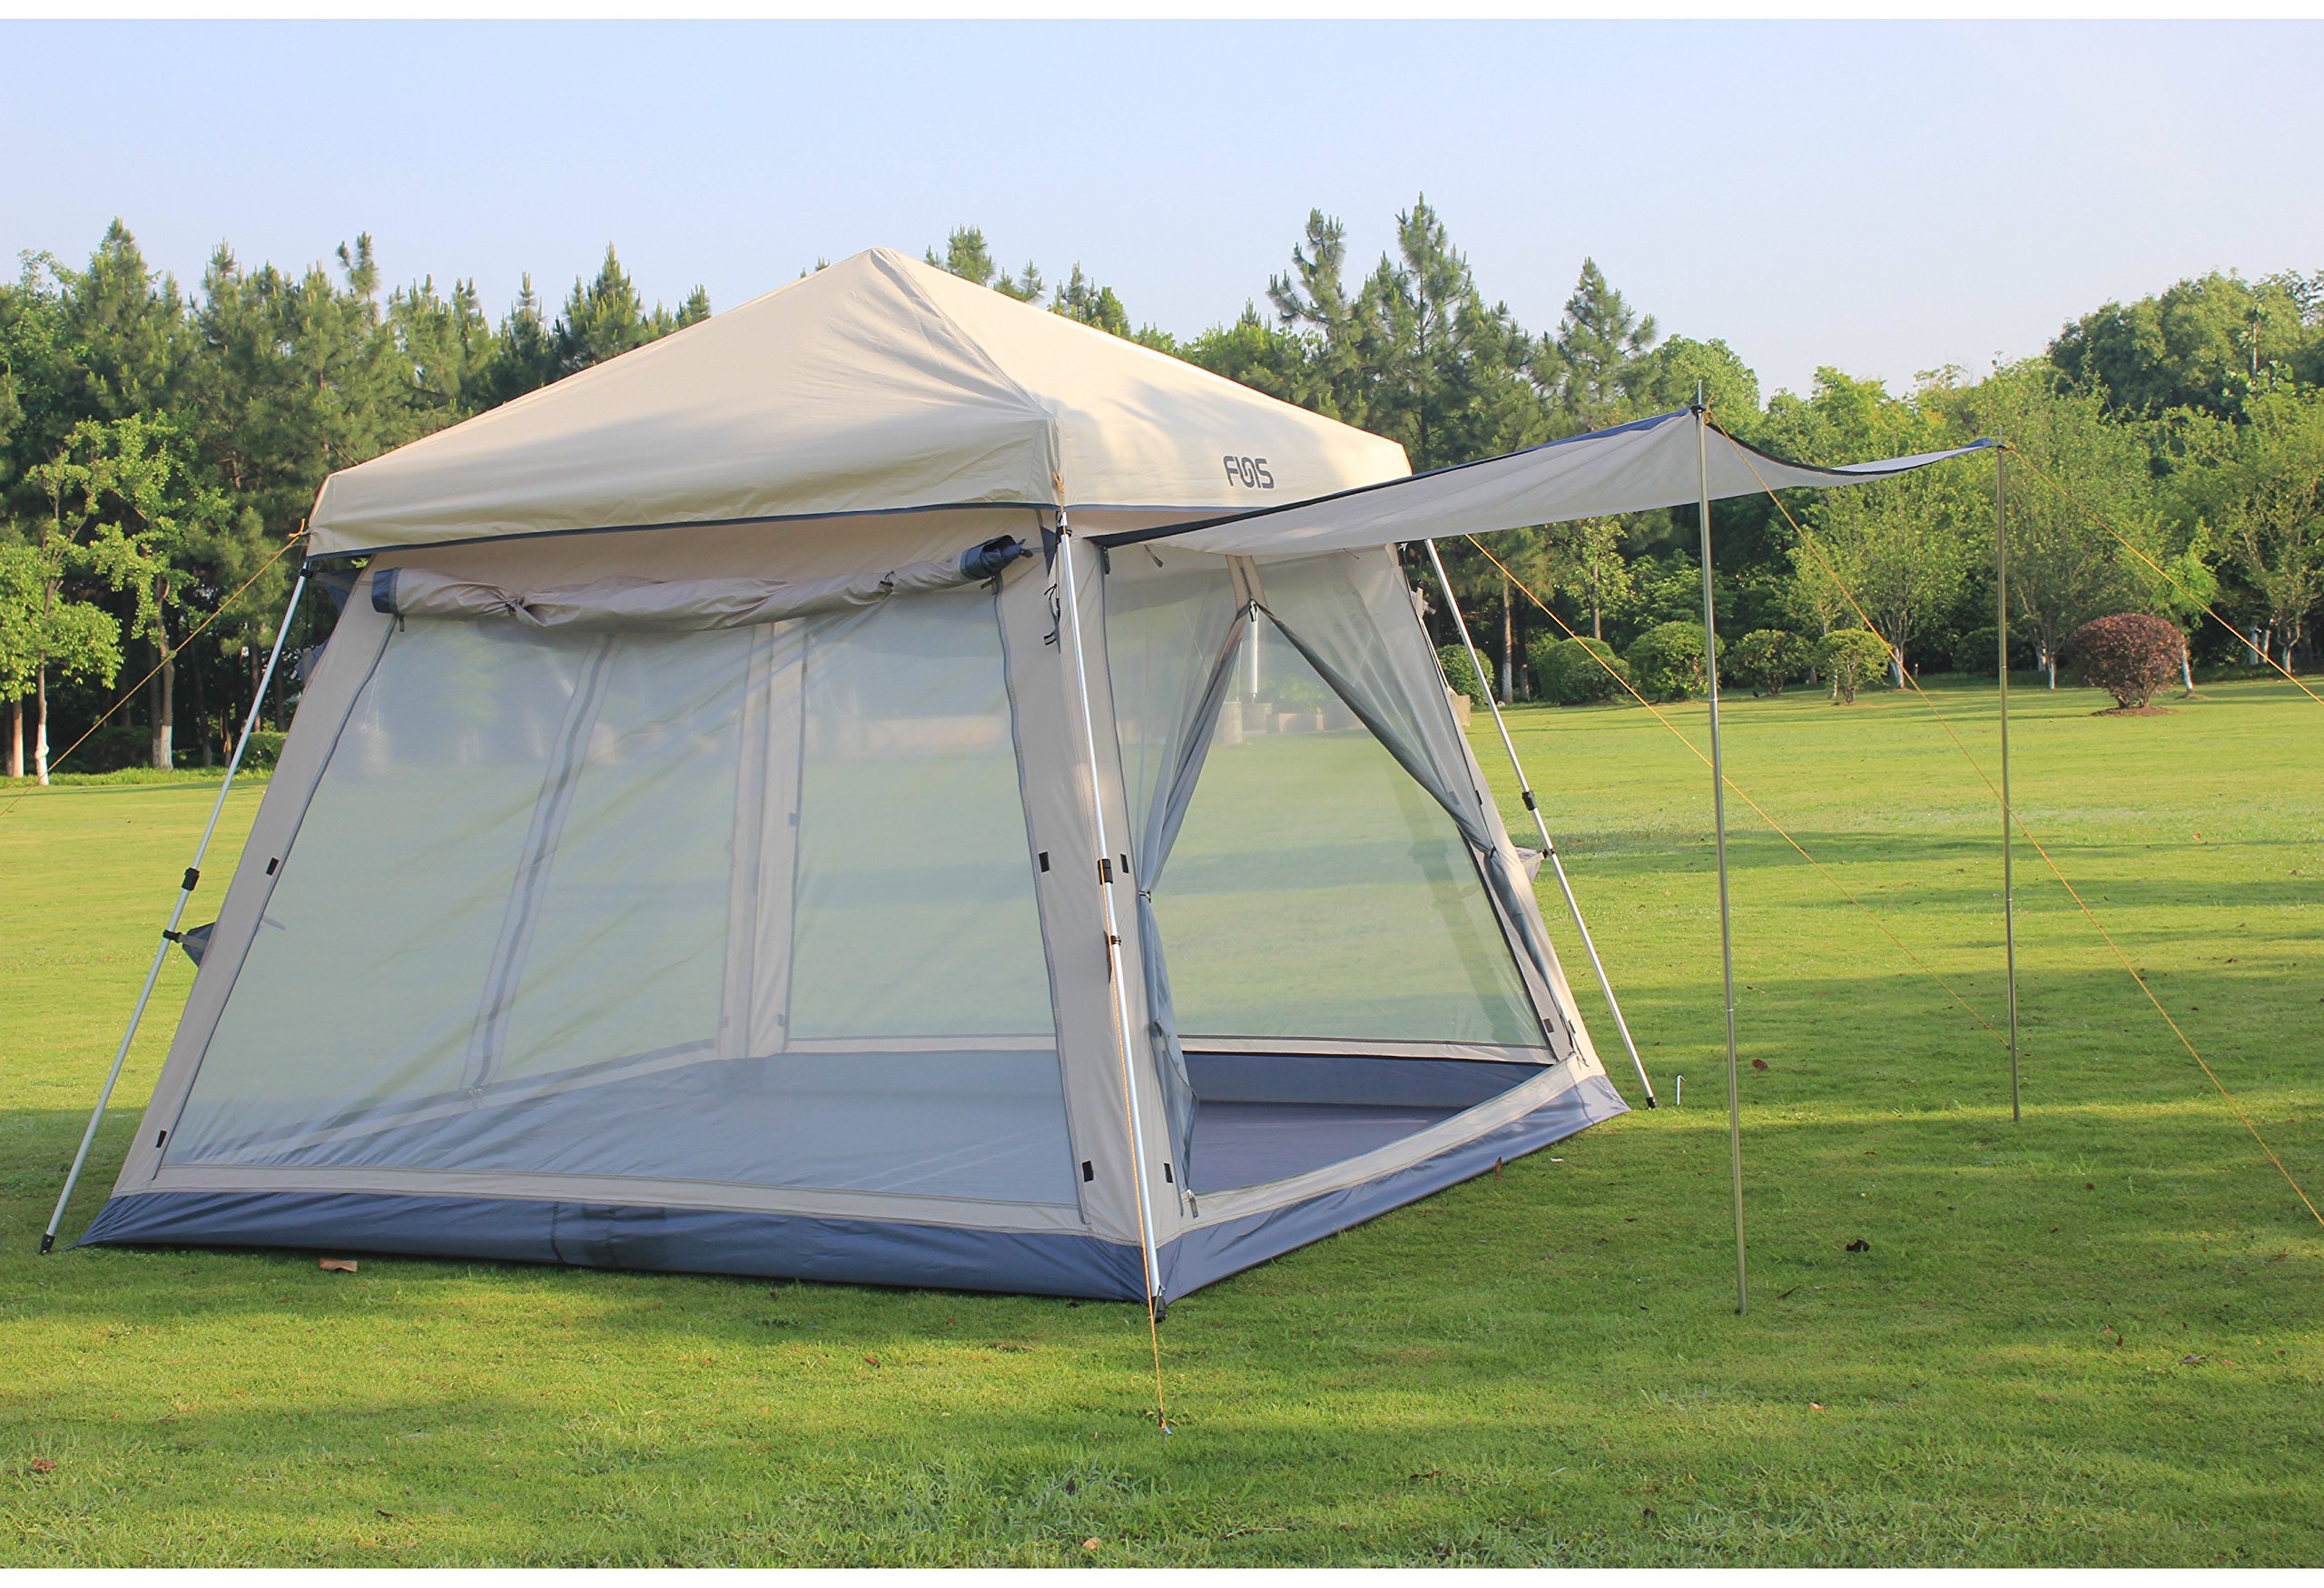 FUNS 10 by 10 ft Automatic Pop Up Camping Gazebo Easy Set Up 5 Person Instant Family Tent